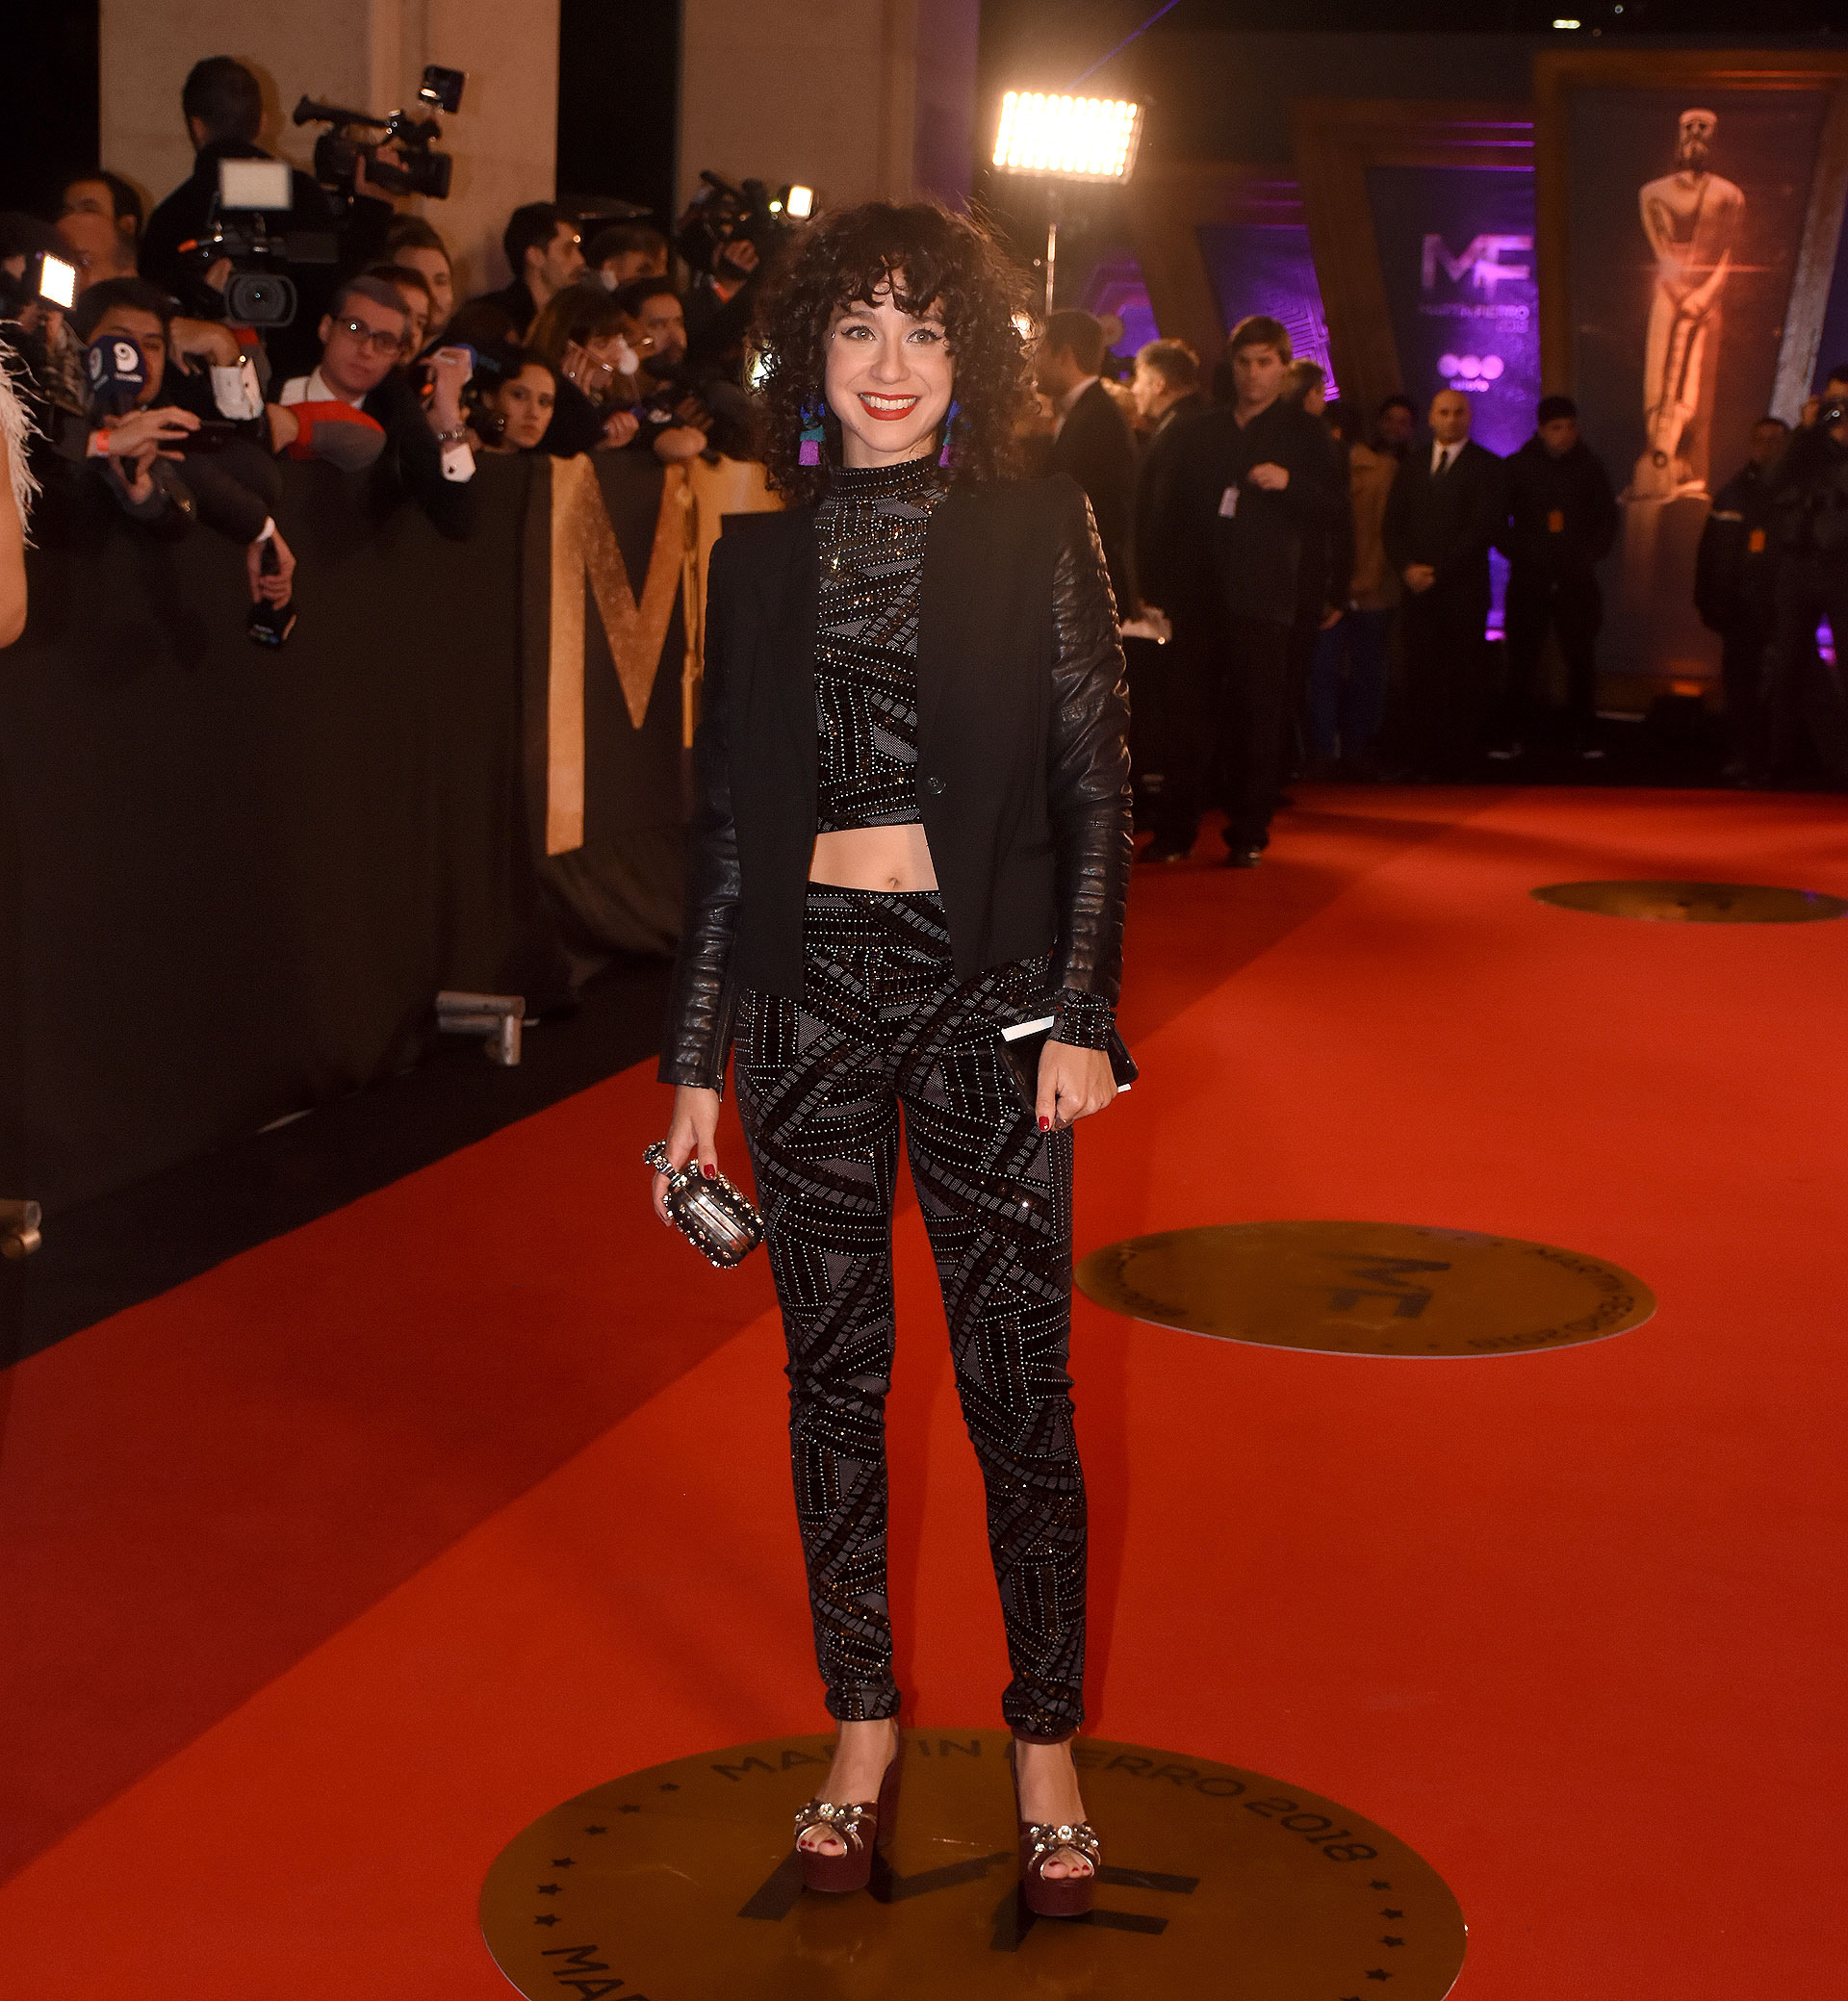 Daniela Herrero, total in black y con bordados de paillettes